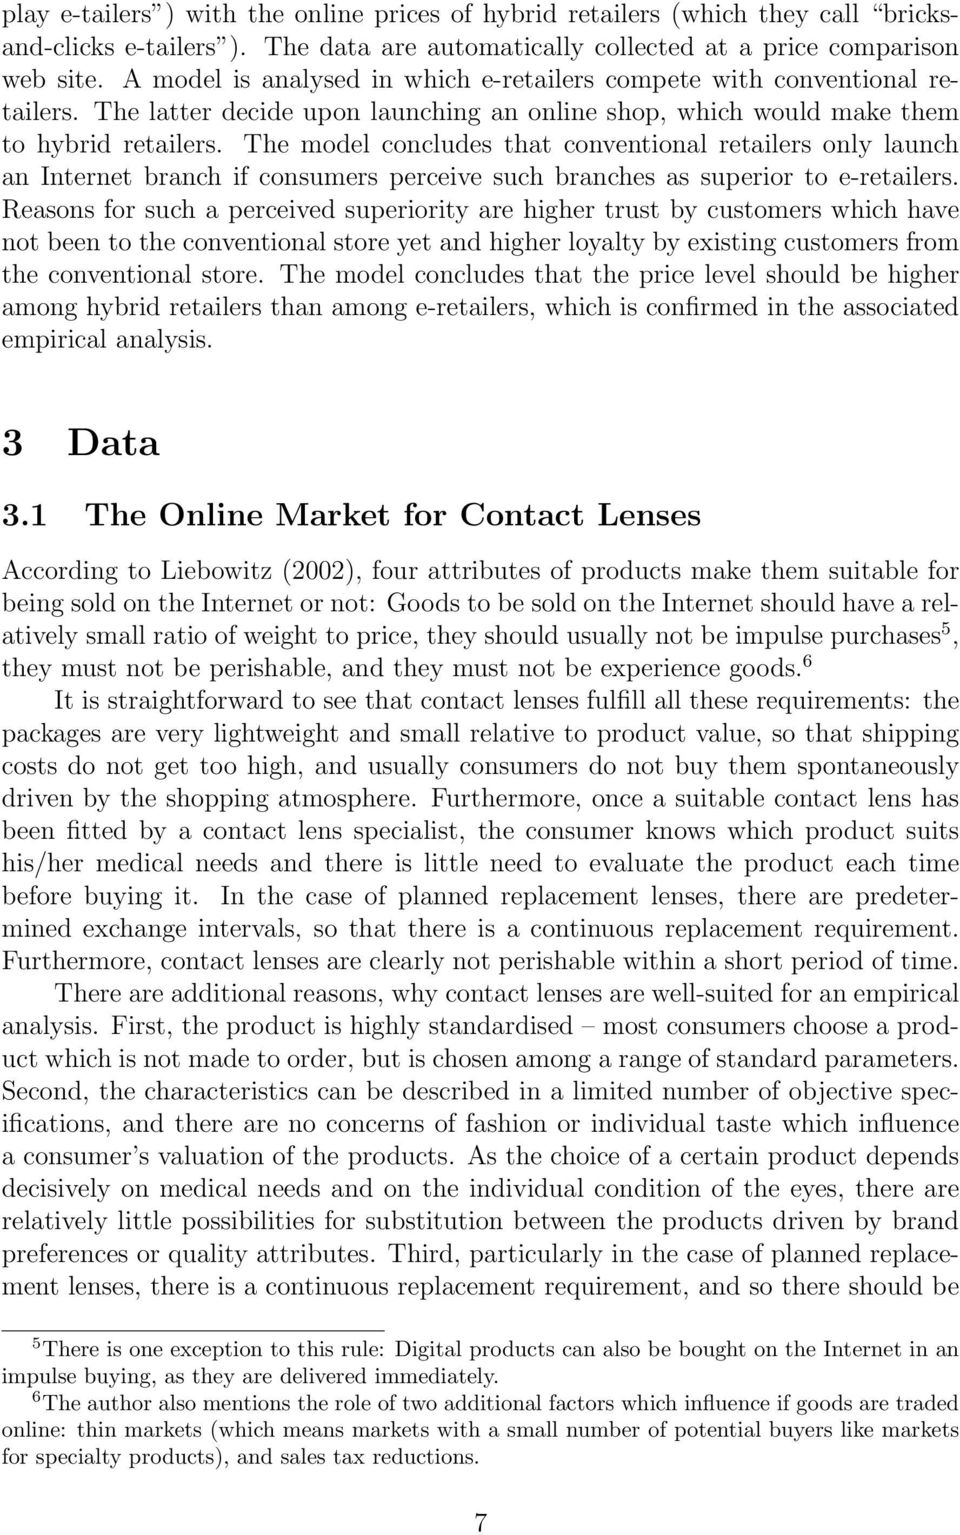 The model concludes that conventional retailers only launch an Internet branch if consumers perceive such branches as superior to e-retailers.